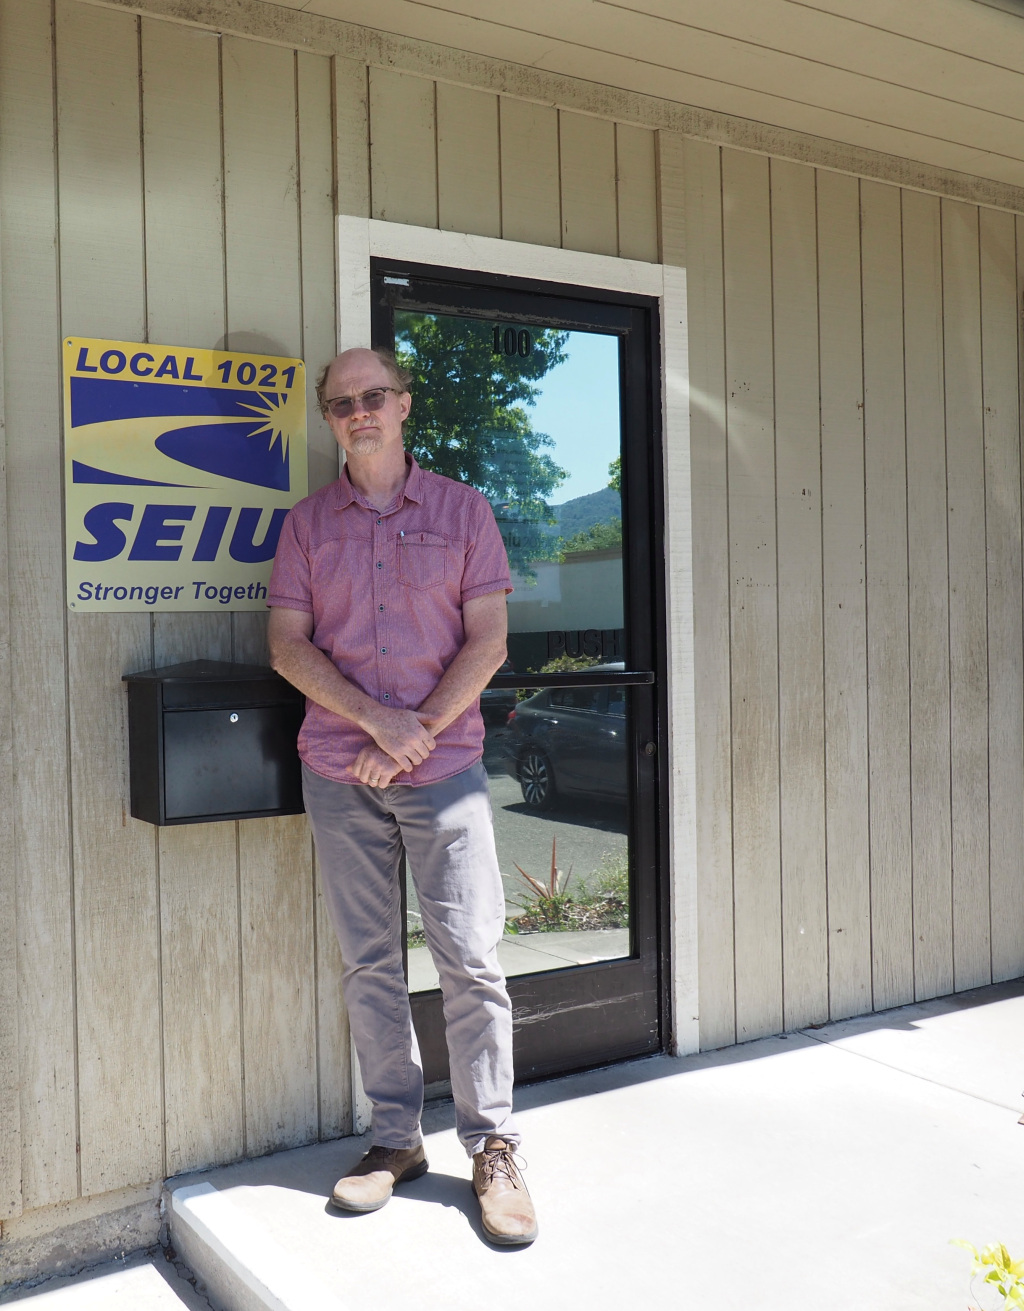 hhsa-staff-concerned-about-change-the-ukiah-daily-journal-2